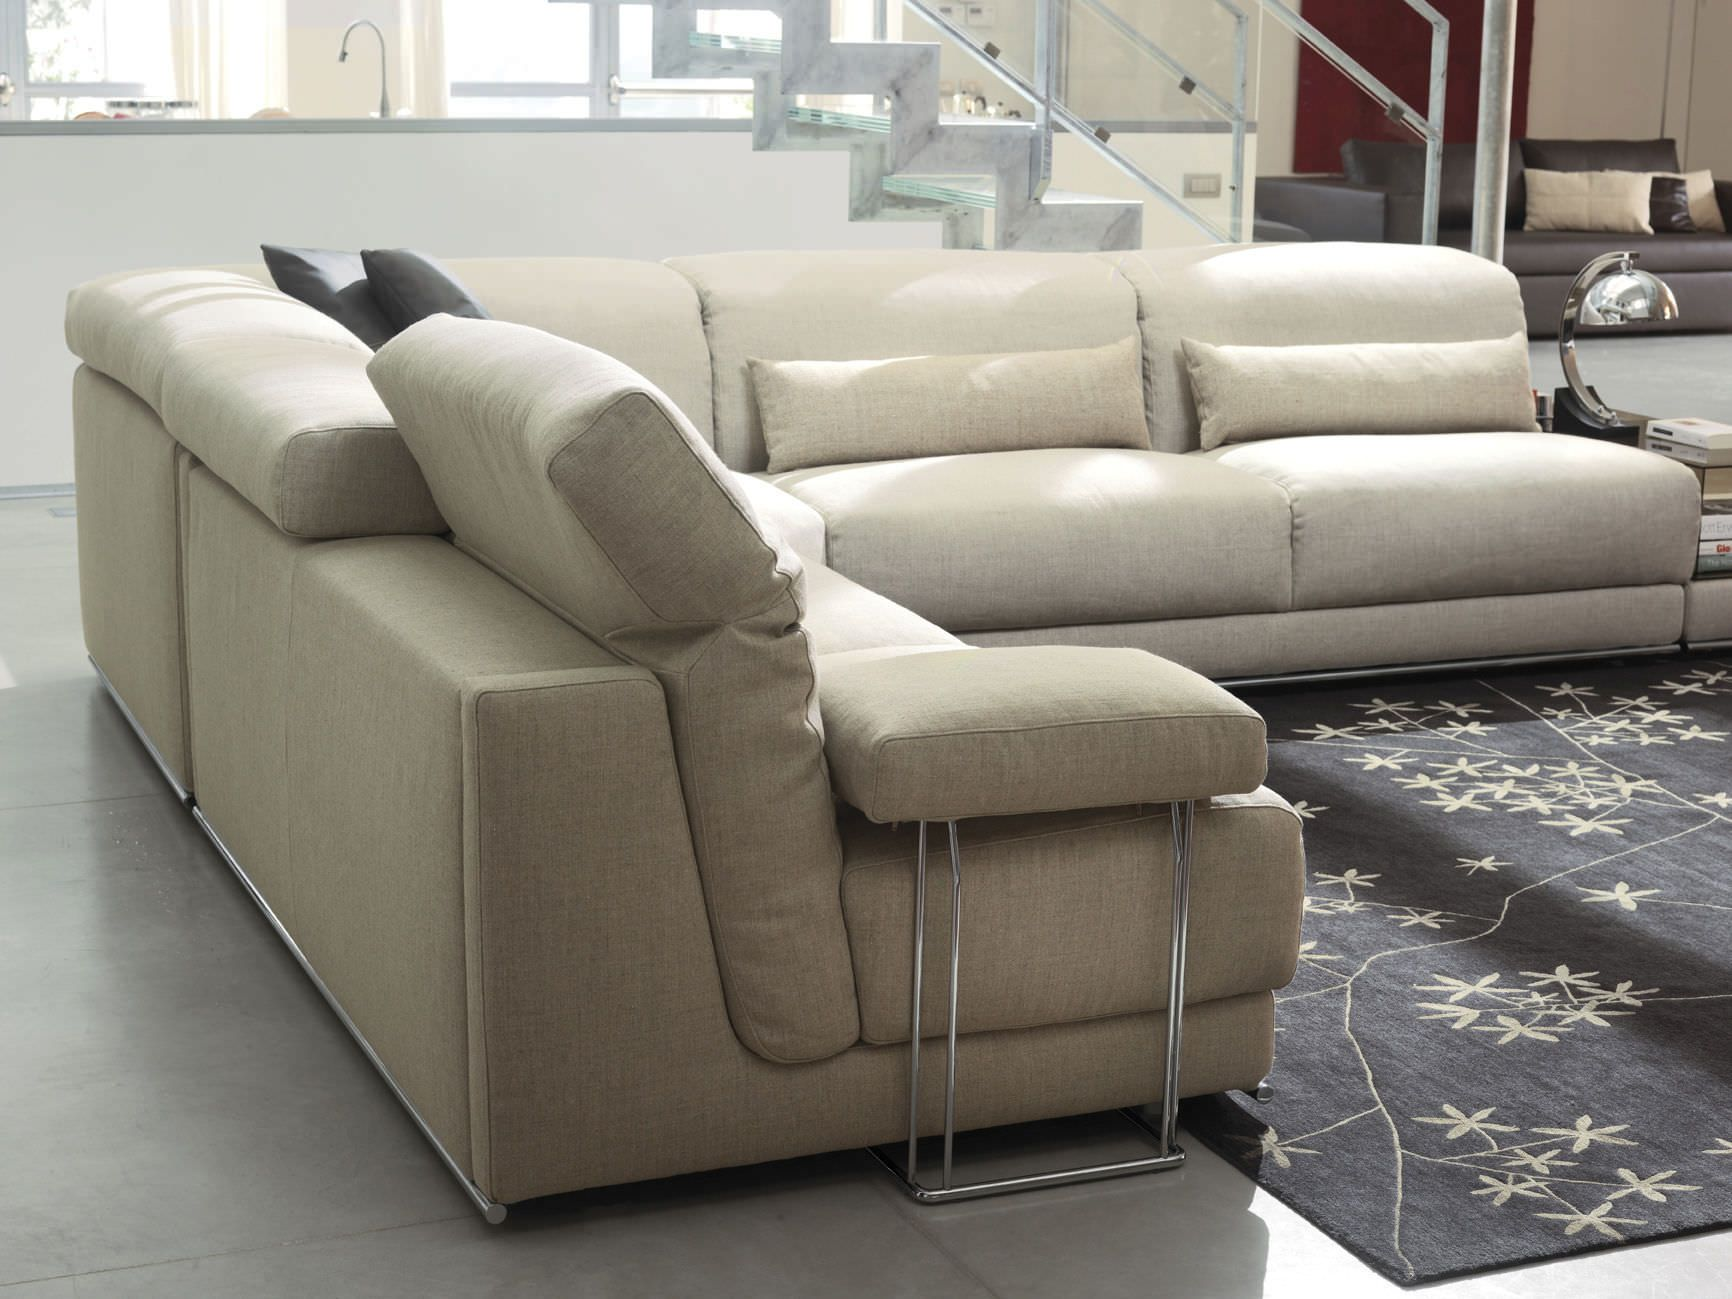 Chaise Lounge Sofa FEYDOM products model BB poster FEYDOM furniture Pinterest Living rooms Room and Interiors